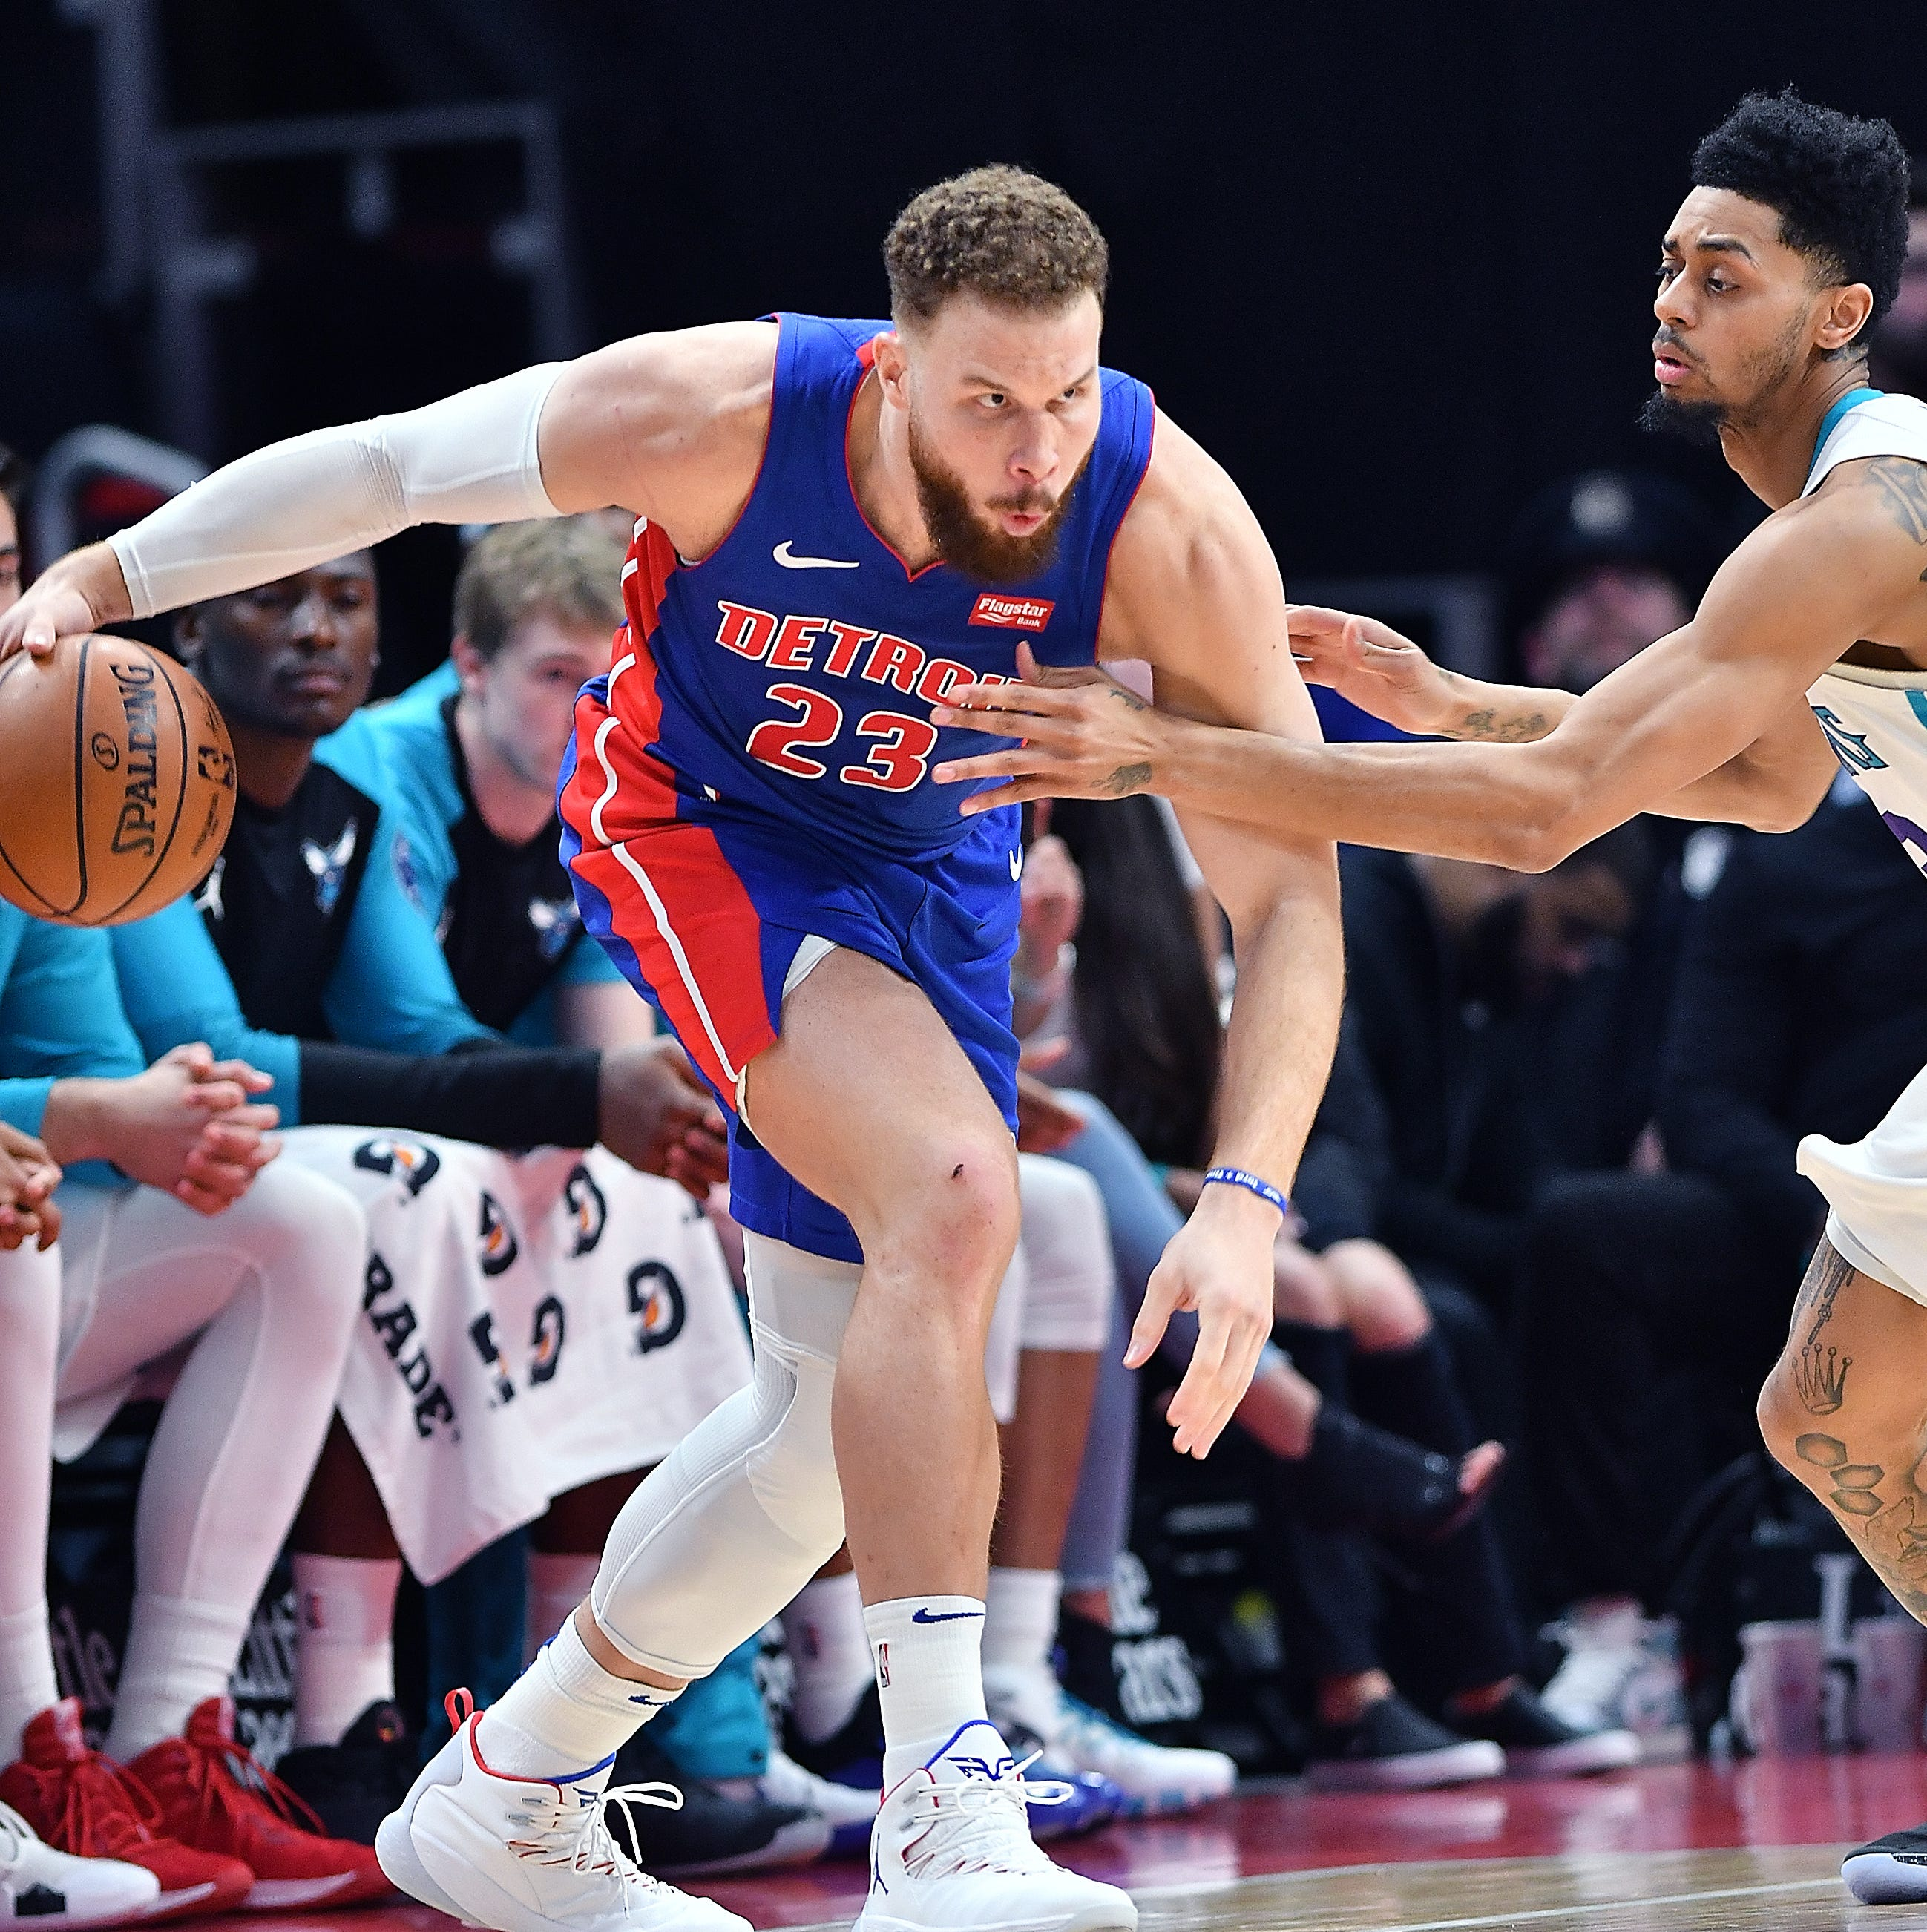 Blake Griffin's uncertain status adds intrigue to first Pistons' playoff series in 3 years